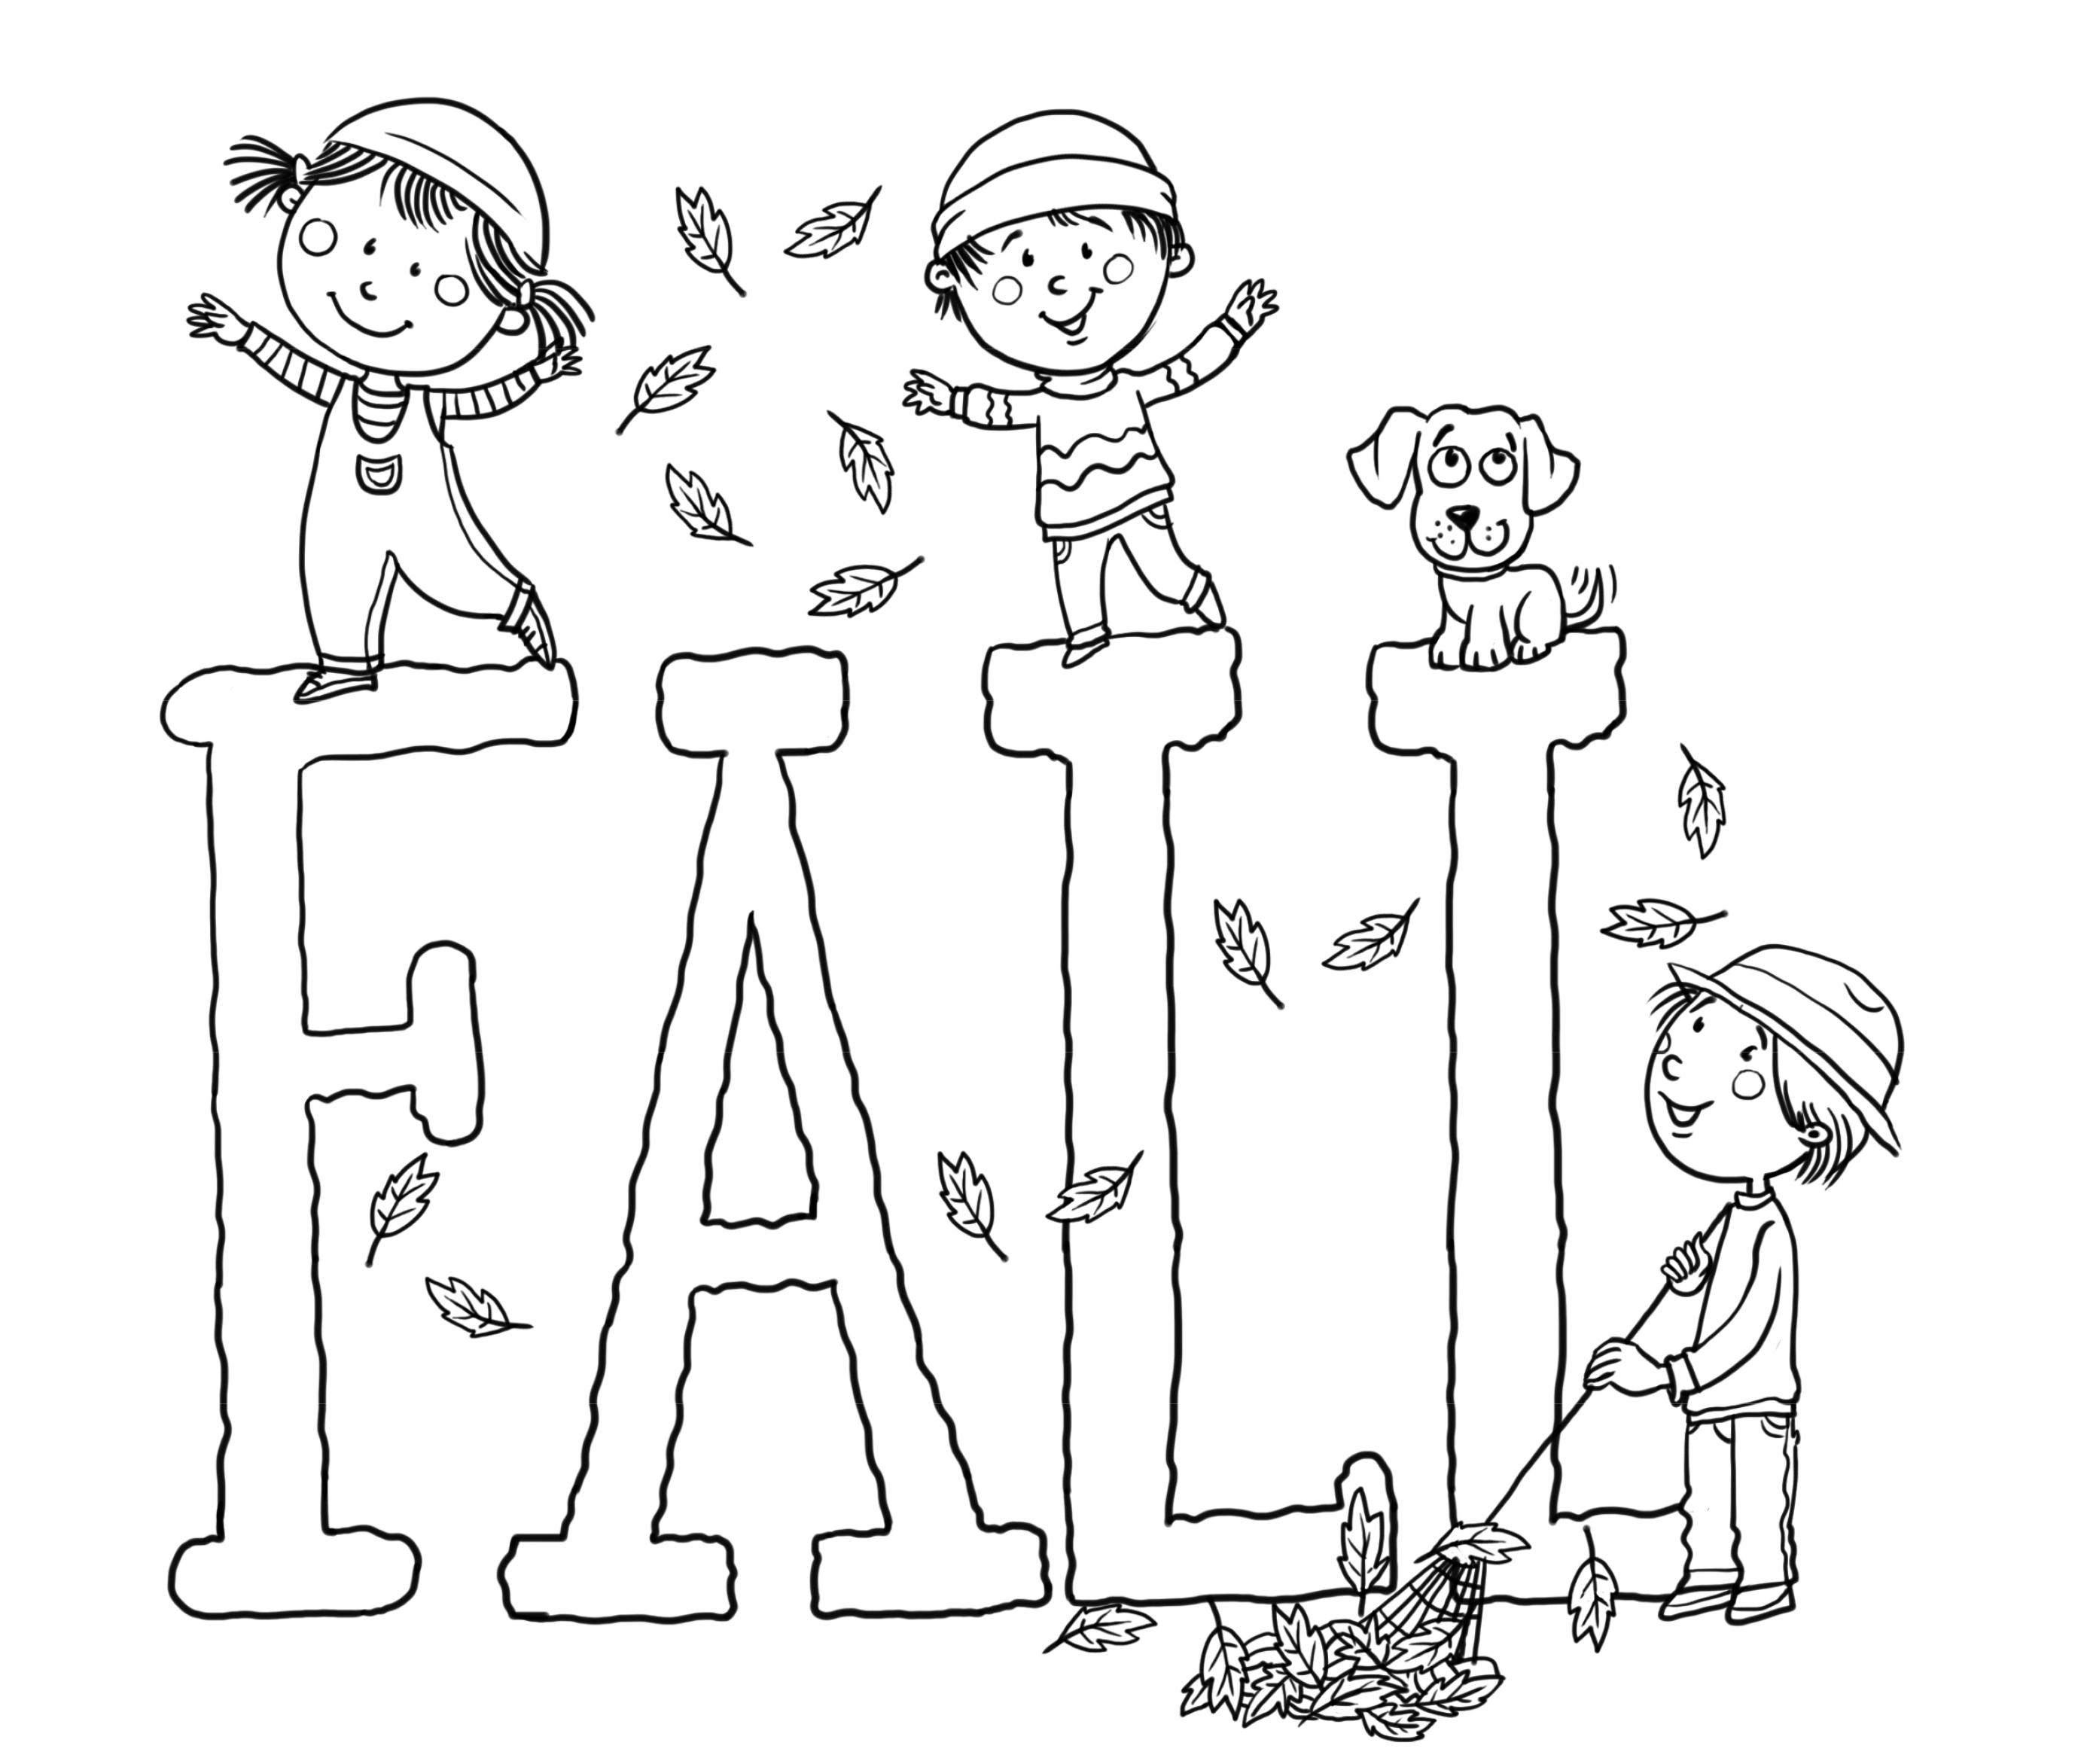 Color The Picture And The Word Fall In This Fun Fall Coloring Page For  Kids. Free Fall Coloring Printables